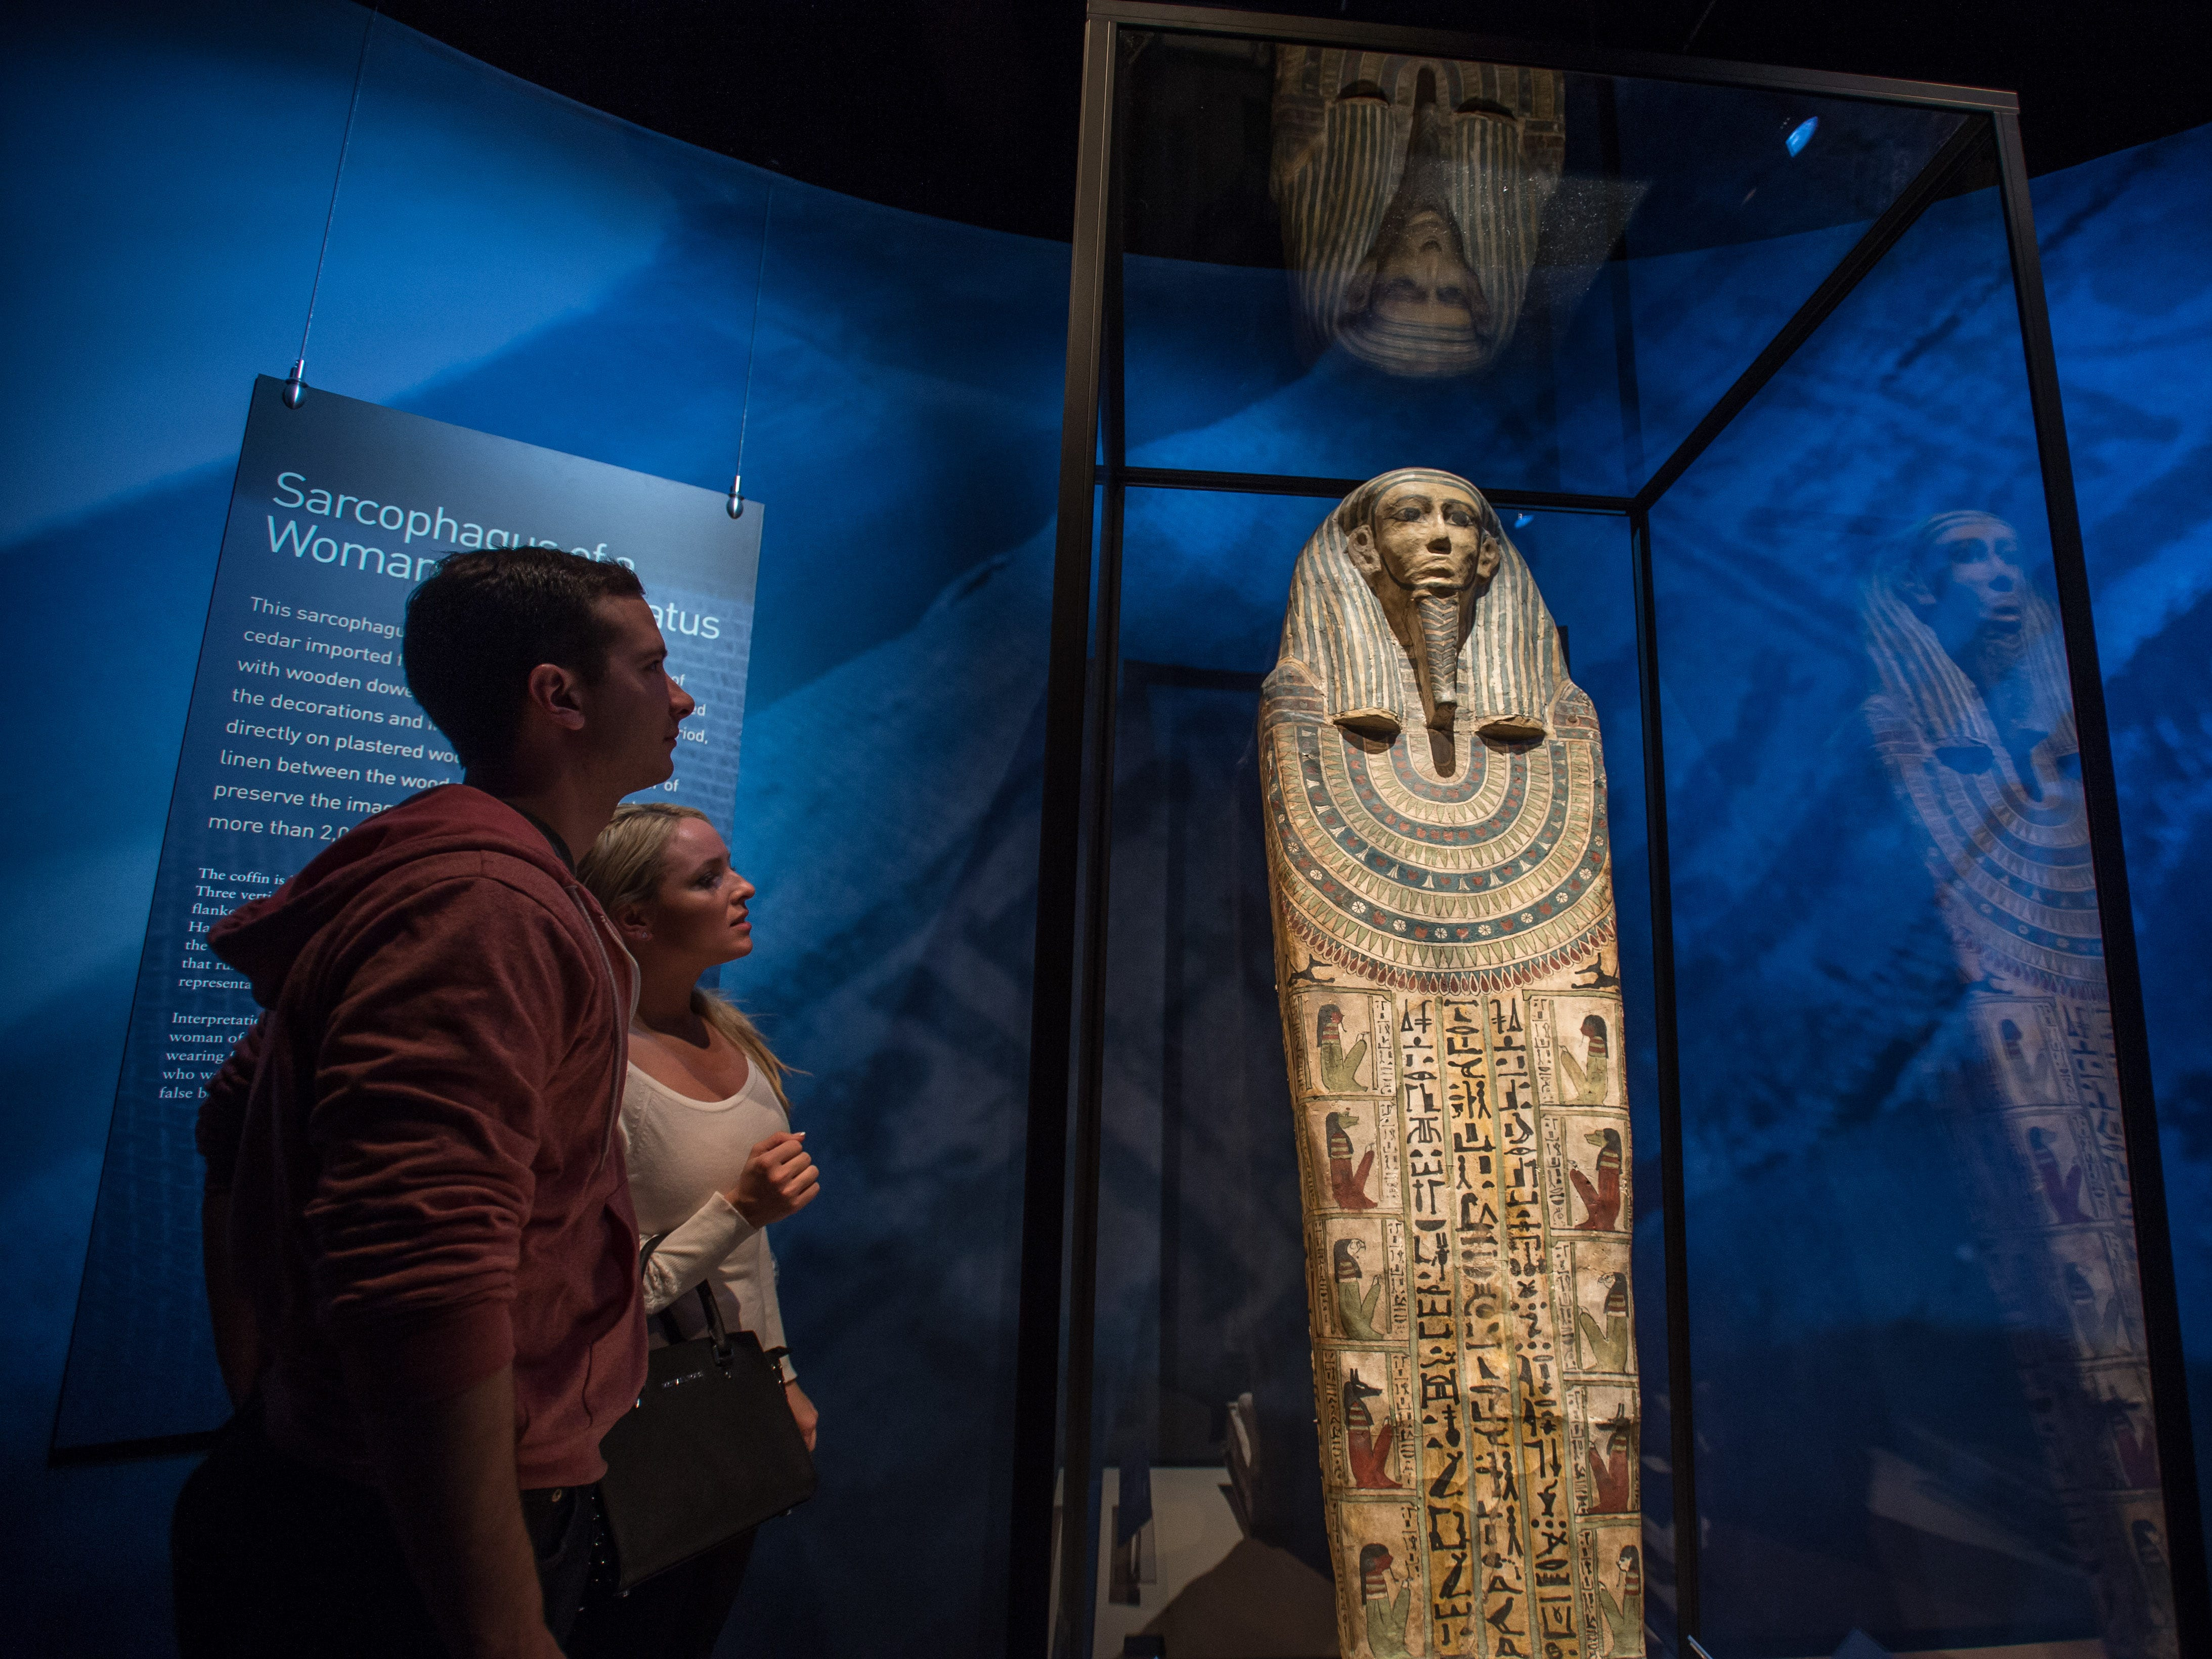 This Egyptian sarcophagus is part of the Mummies of the World: The Exhibition at the Arizona Science Center.